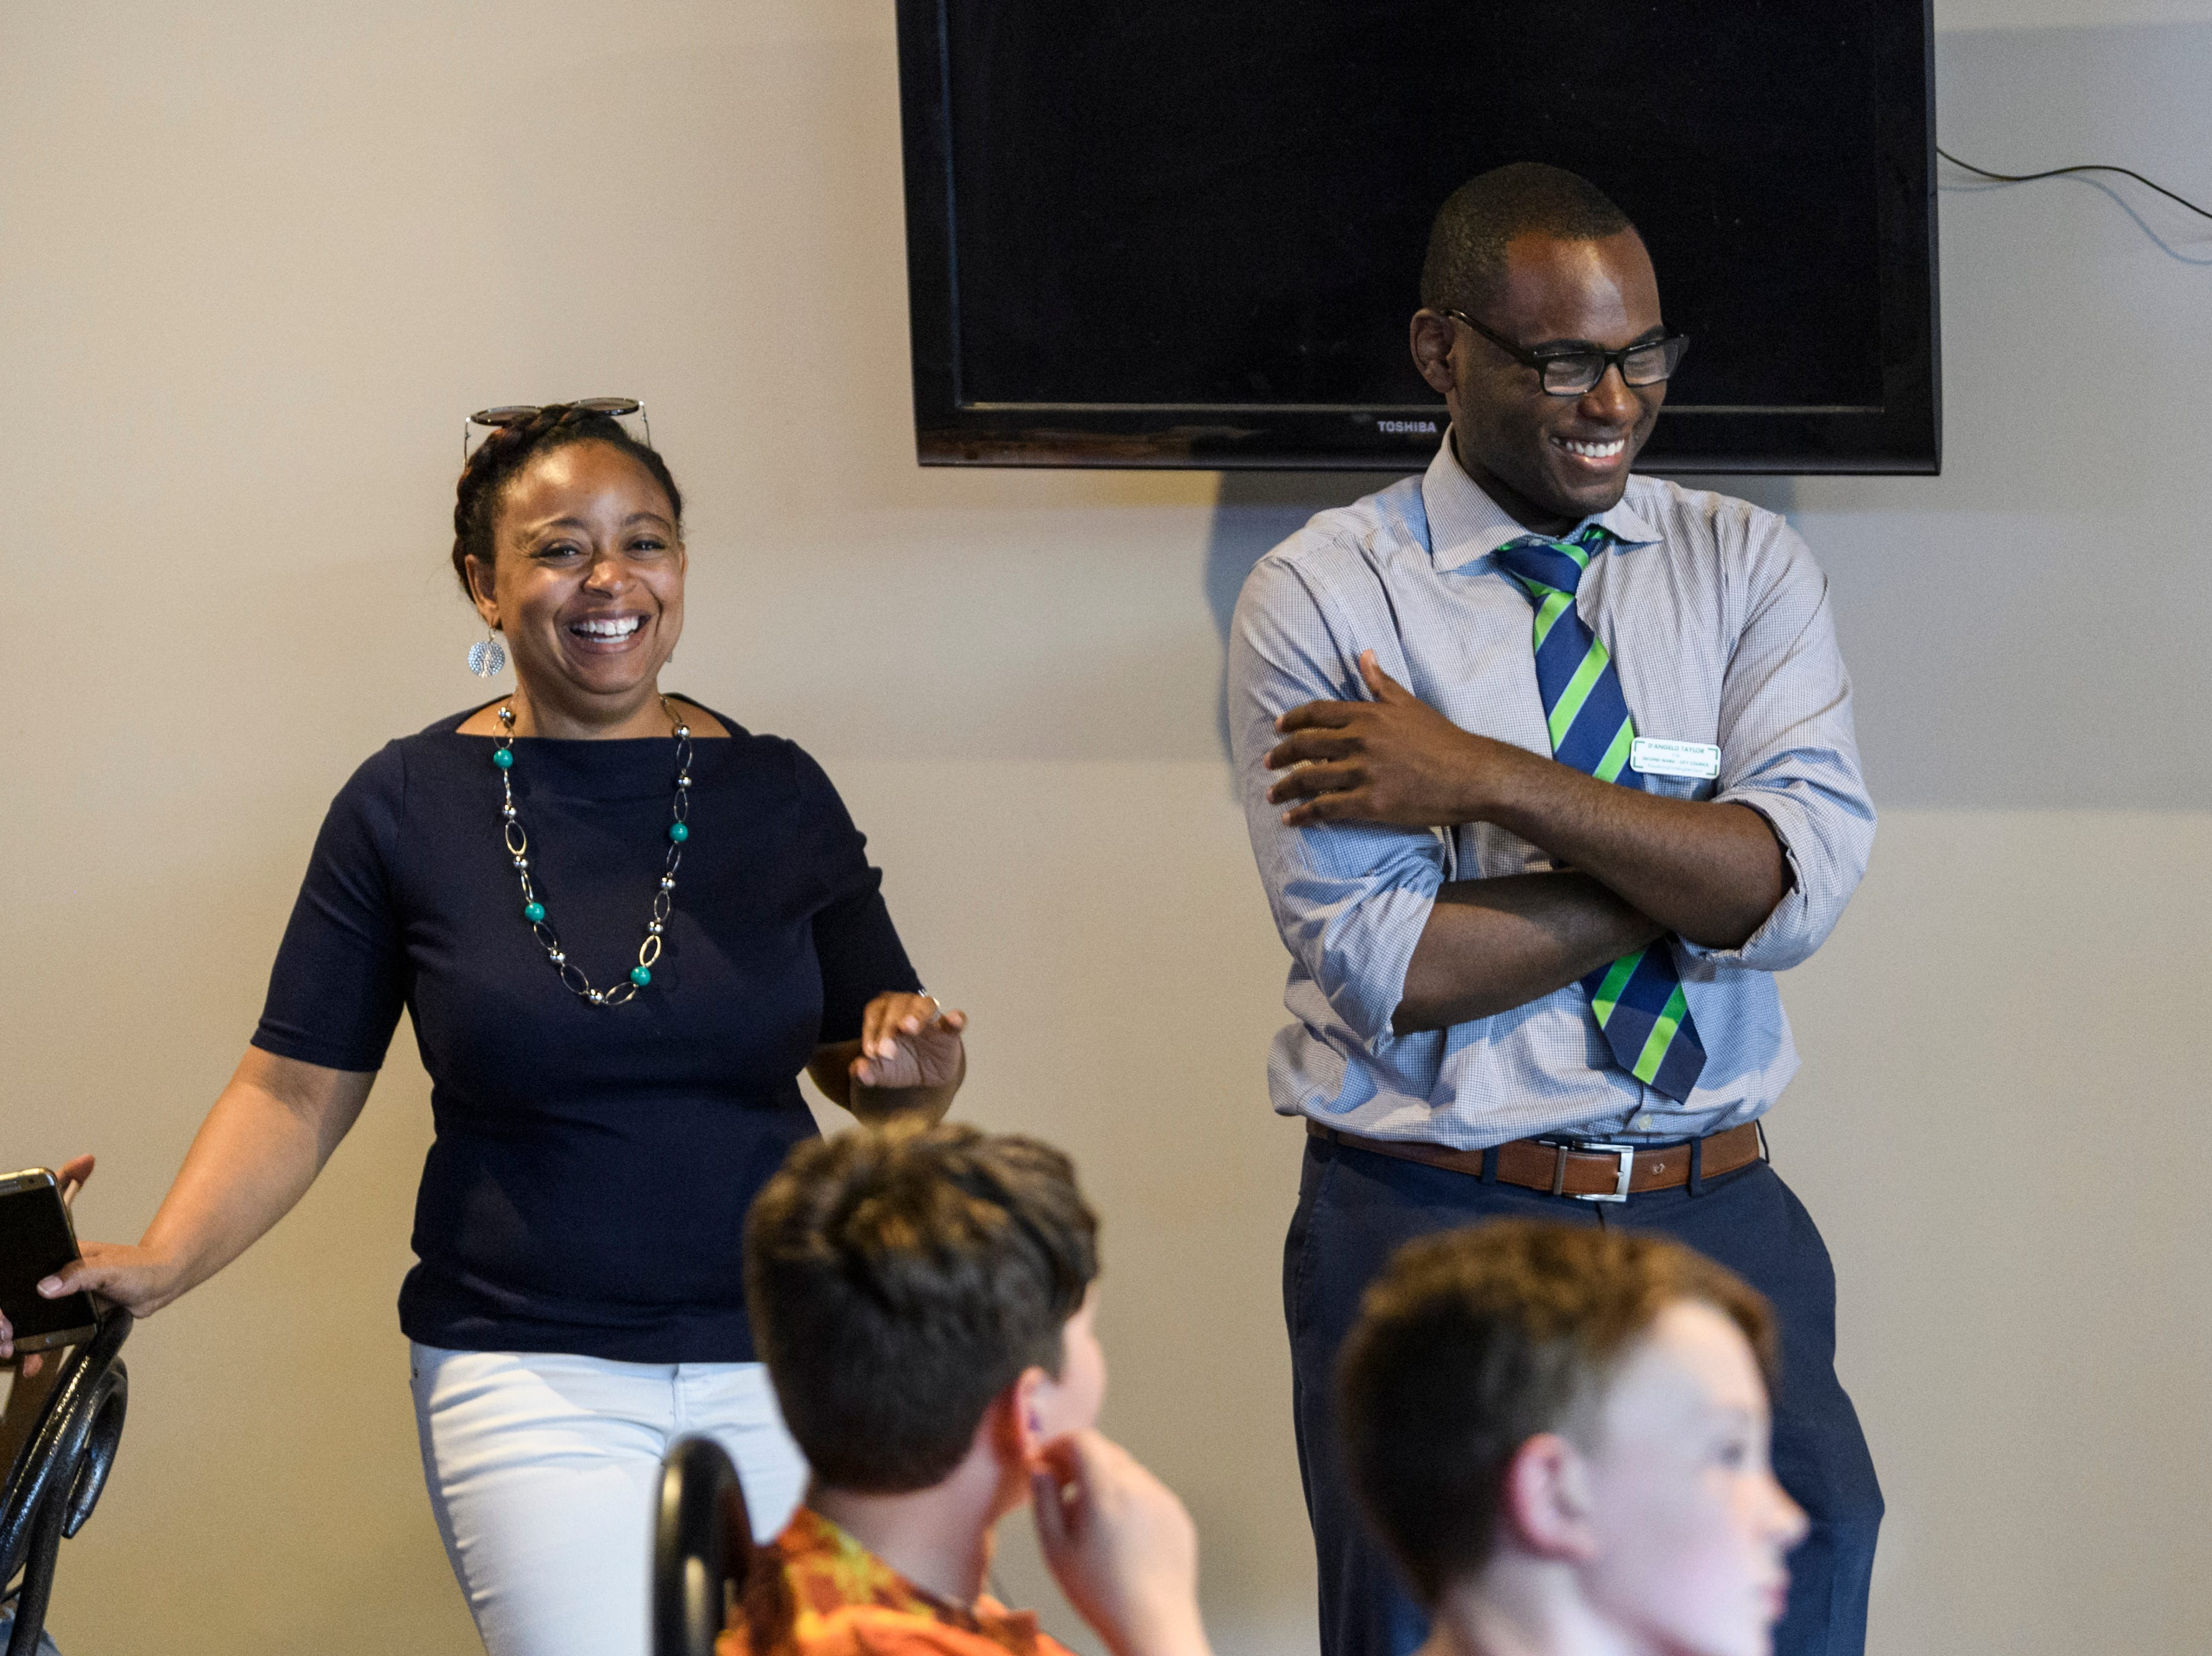 D'Angelo Taylor, right, and his campaign manager Karese Johnson, left, laugh as several supporters stand up to talk about Taylor's impact on the community despite his loss to Missy Mosby in the second ward city council race during a watch party at Spudz-N-Stuff on Washington Avenue in Evansville, Ind., Tuesday, May 7, 2019.